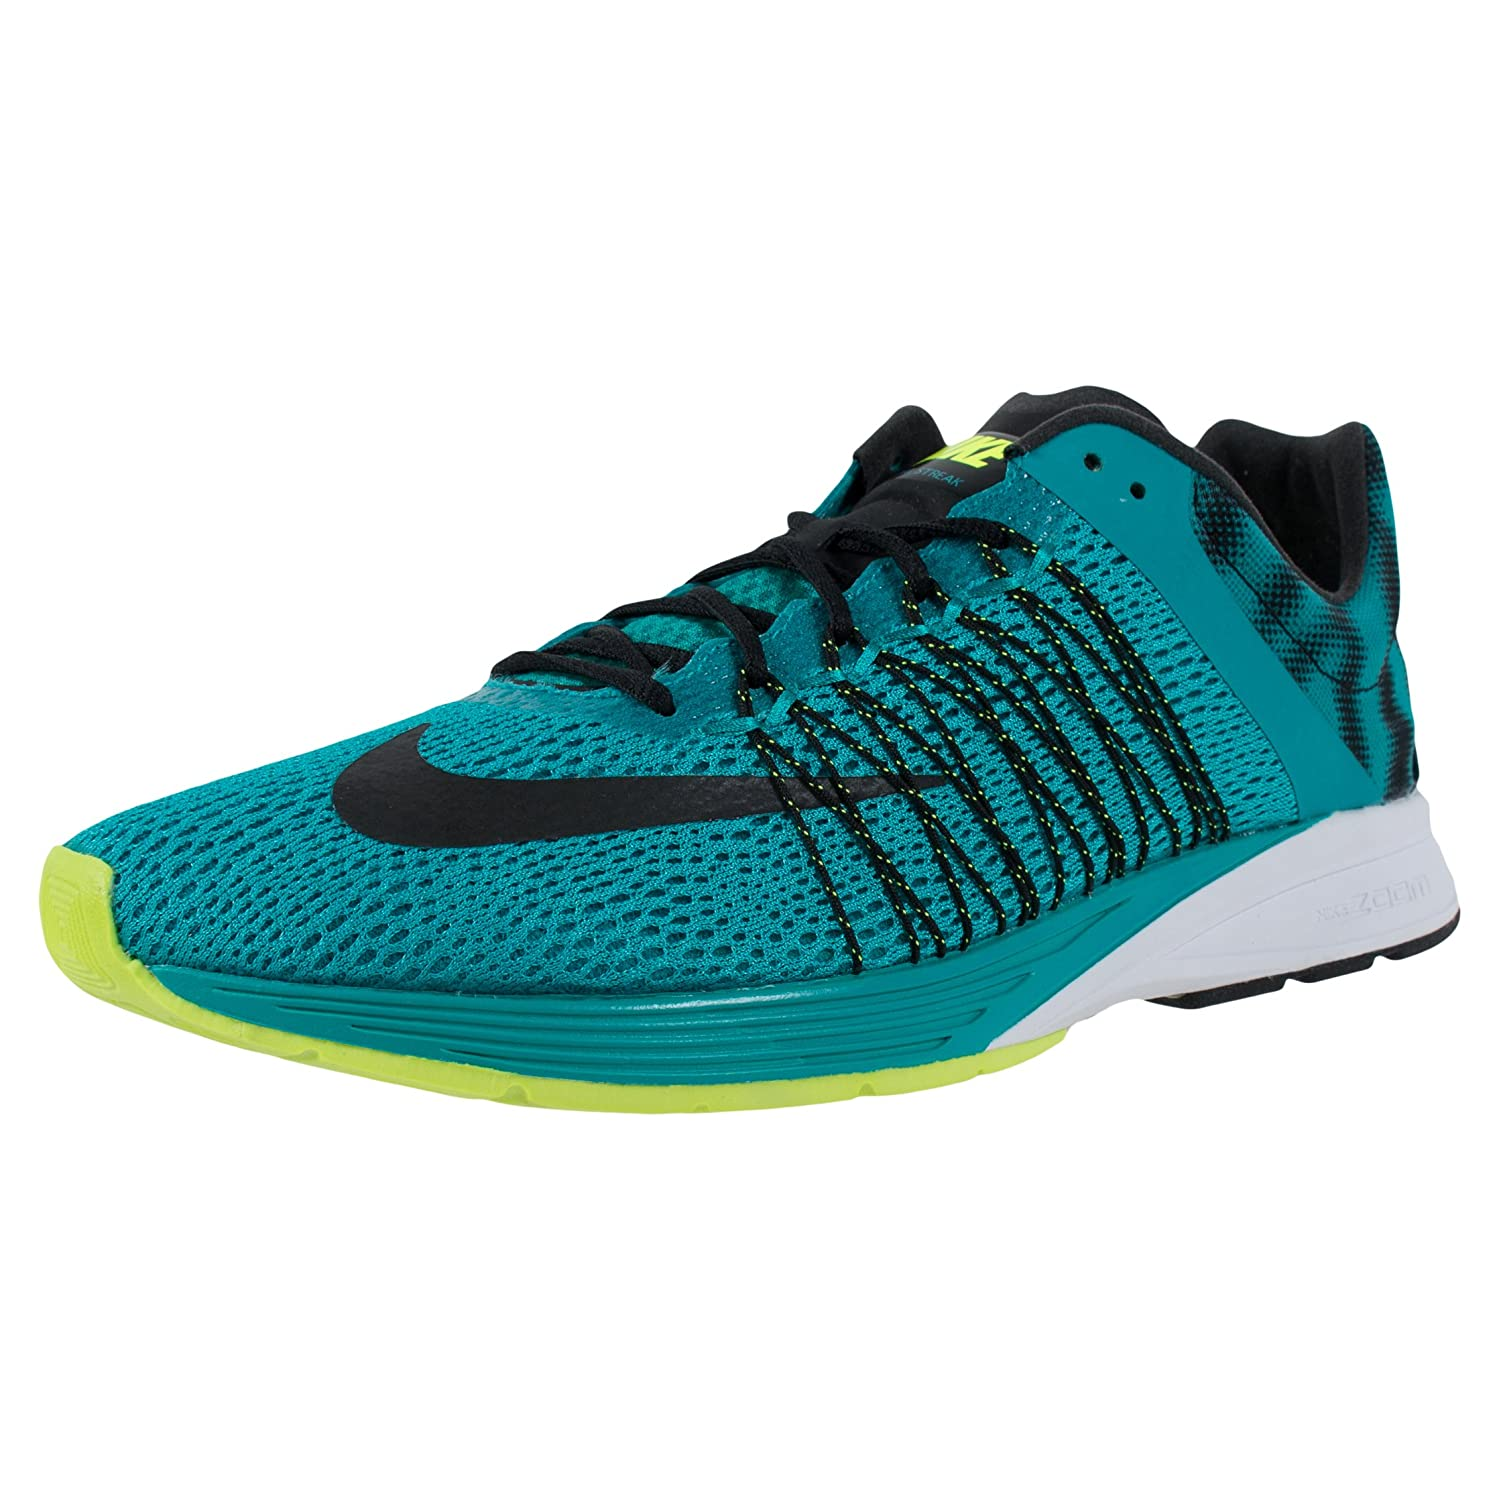 outlet store 2a7cb d3986 Amazon.com   Nike Zoom Steak 5 Men s Shoes Turbo Green Volt Black 641318-300    Track   Field   Cross Country